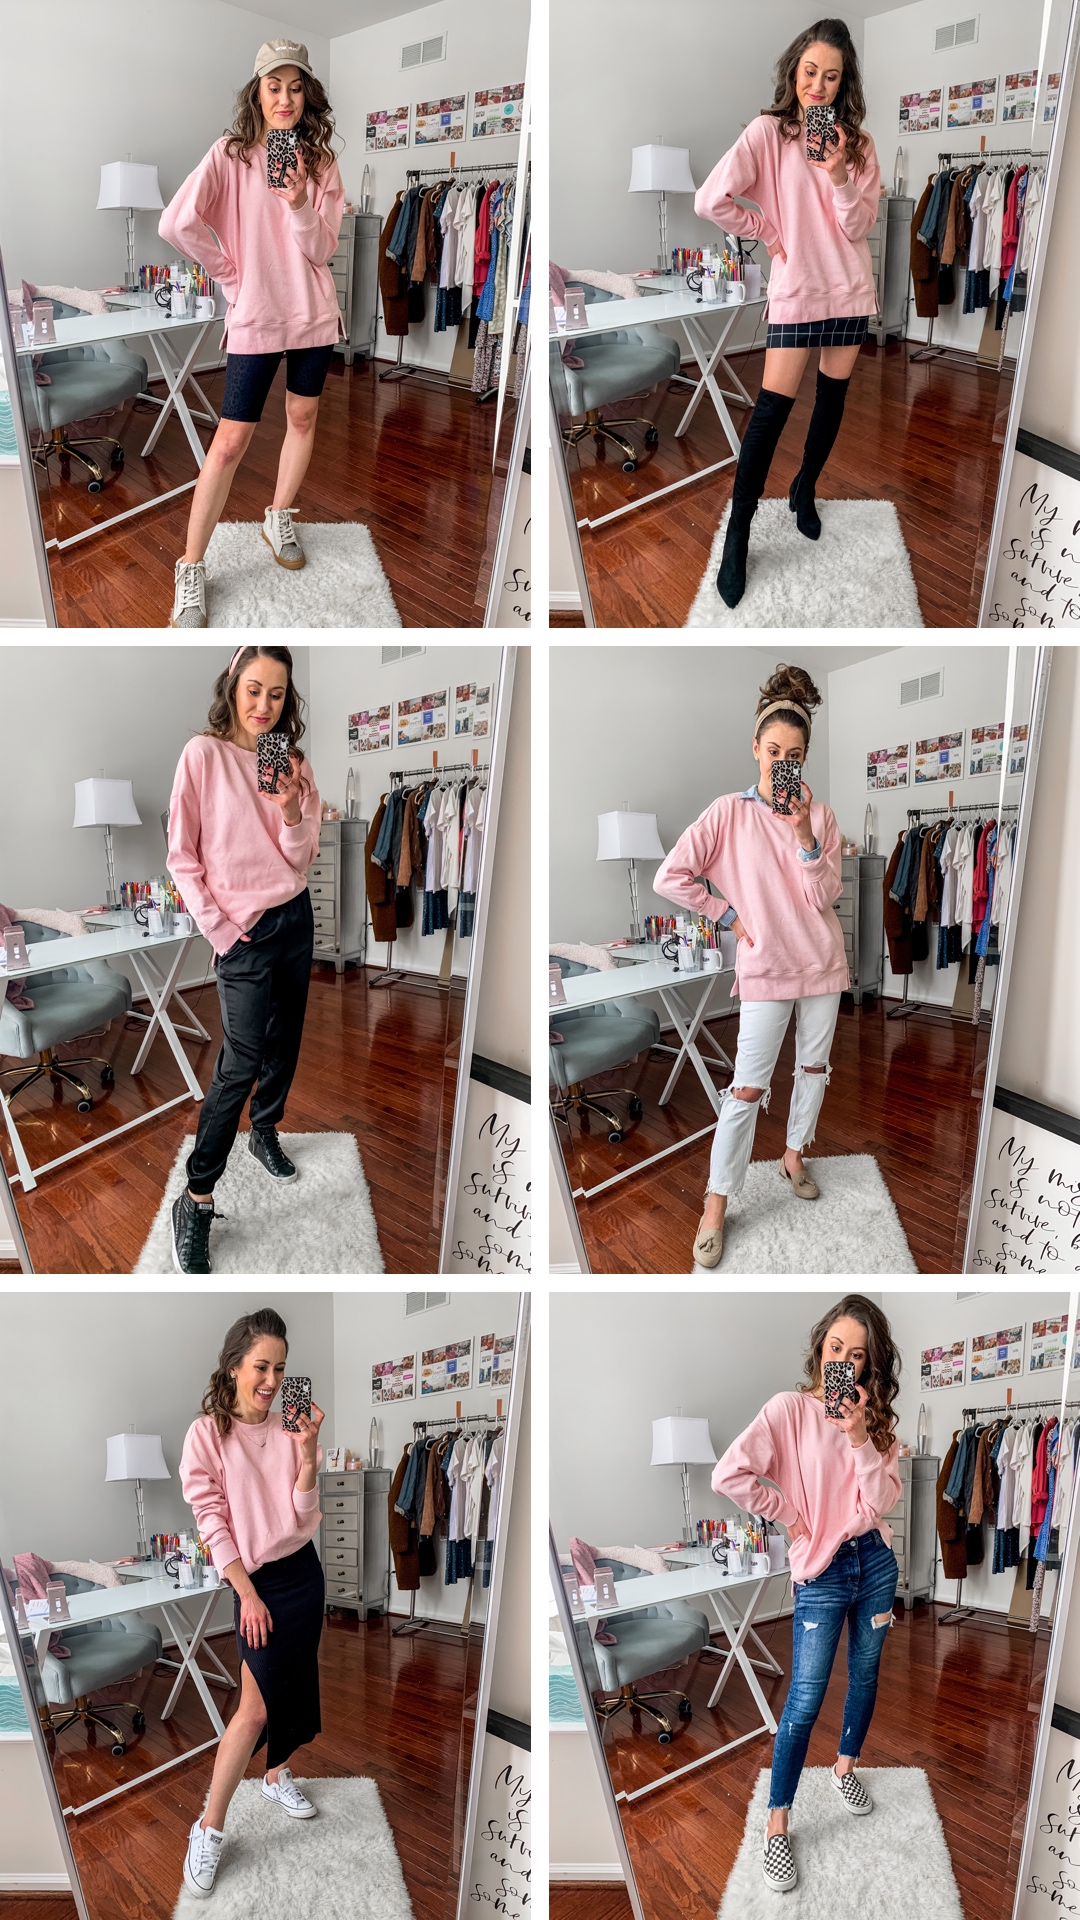 8 CUTE WAYS TO WEAR YOUR FAVORITE SWEATSHIRT - Sweatshirt Outfit Ideas on Coming Up Roses